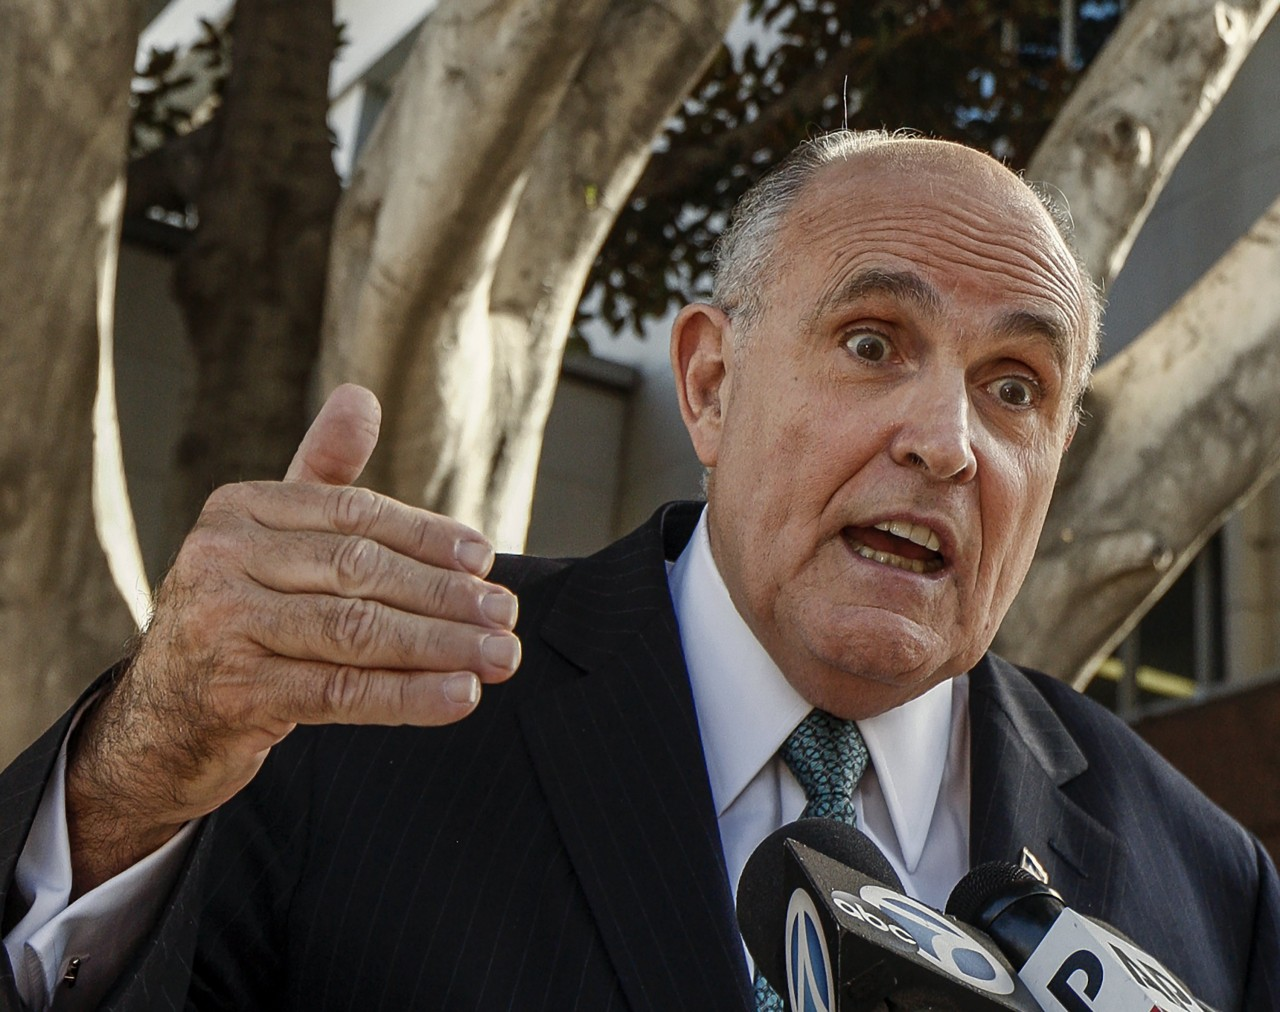 Rudy Giuliani: President Obama doesn't love America